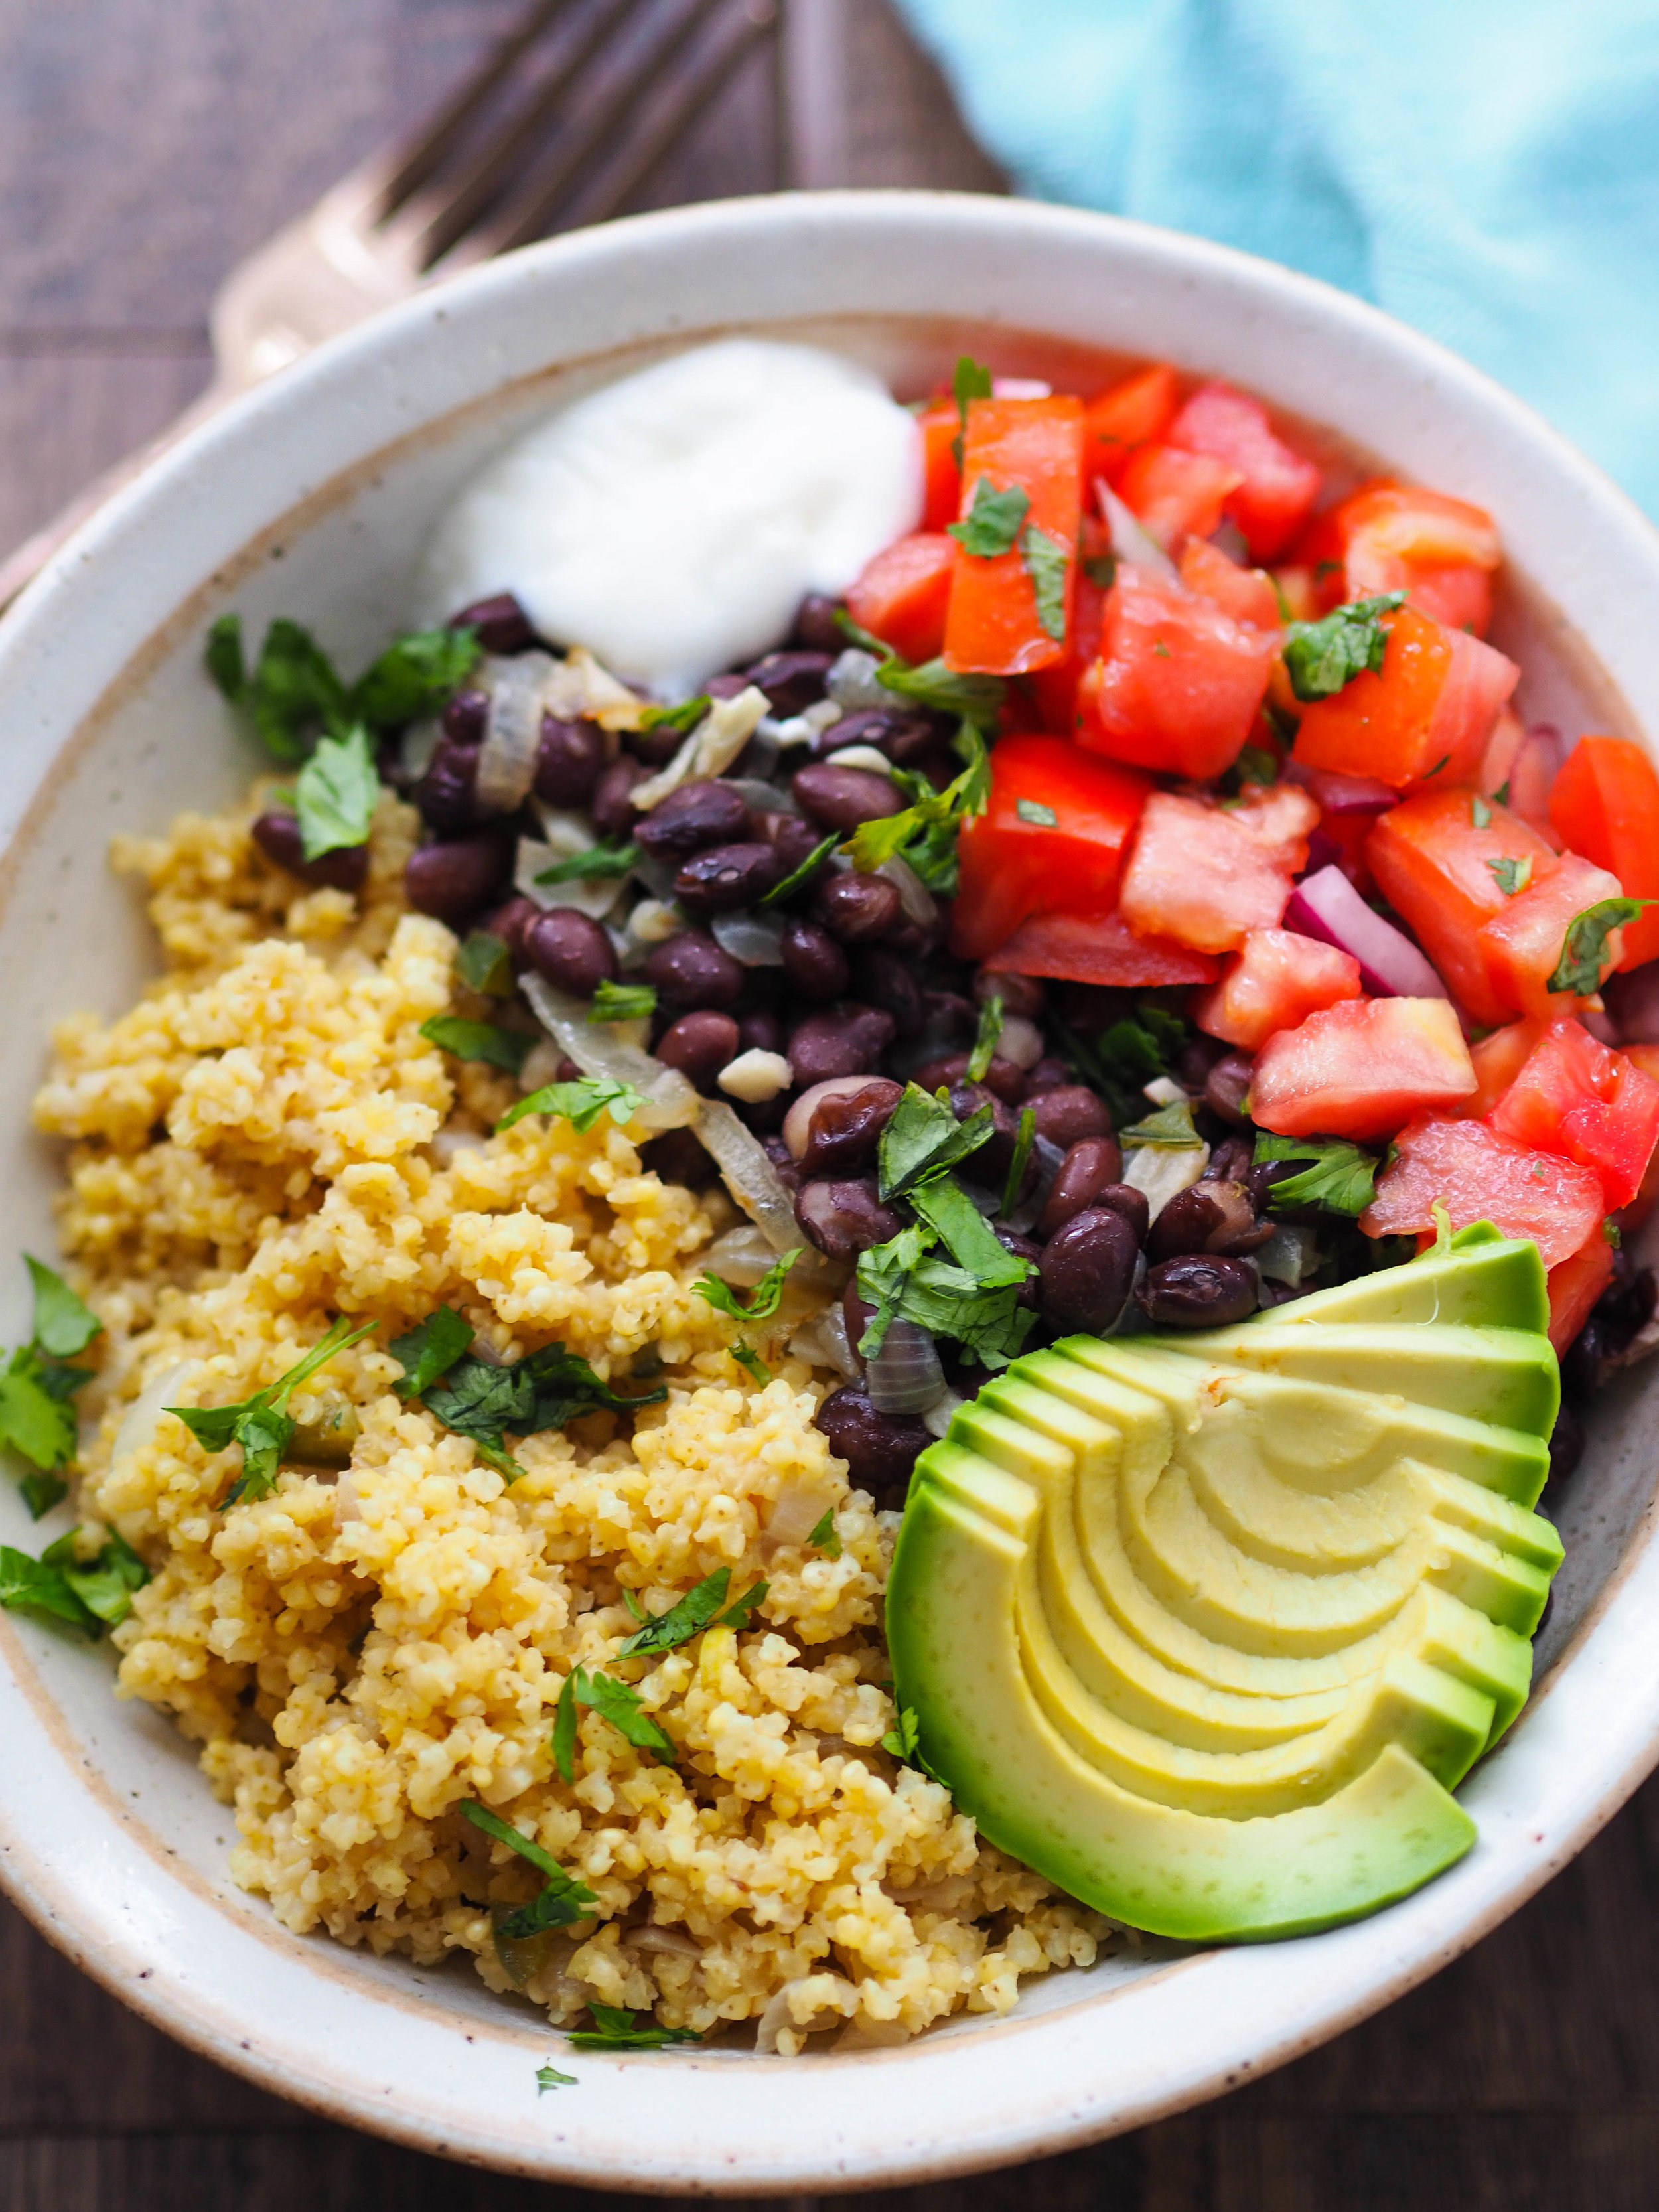 Make this easy millet bowl with black beans and pico de gallo for lunch! It's packed with filling fiber and protein! Jazz it up with extra veggies or hot sauce! #vegetarian #vegan #brainbowl #millet #blackbeans #avocado #healthyrecipe #glutenfree